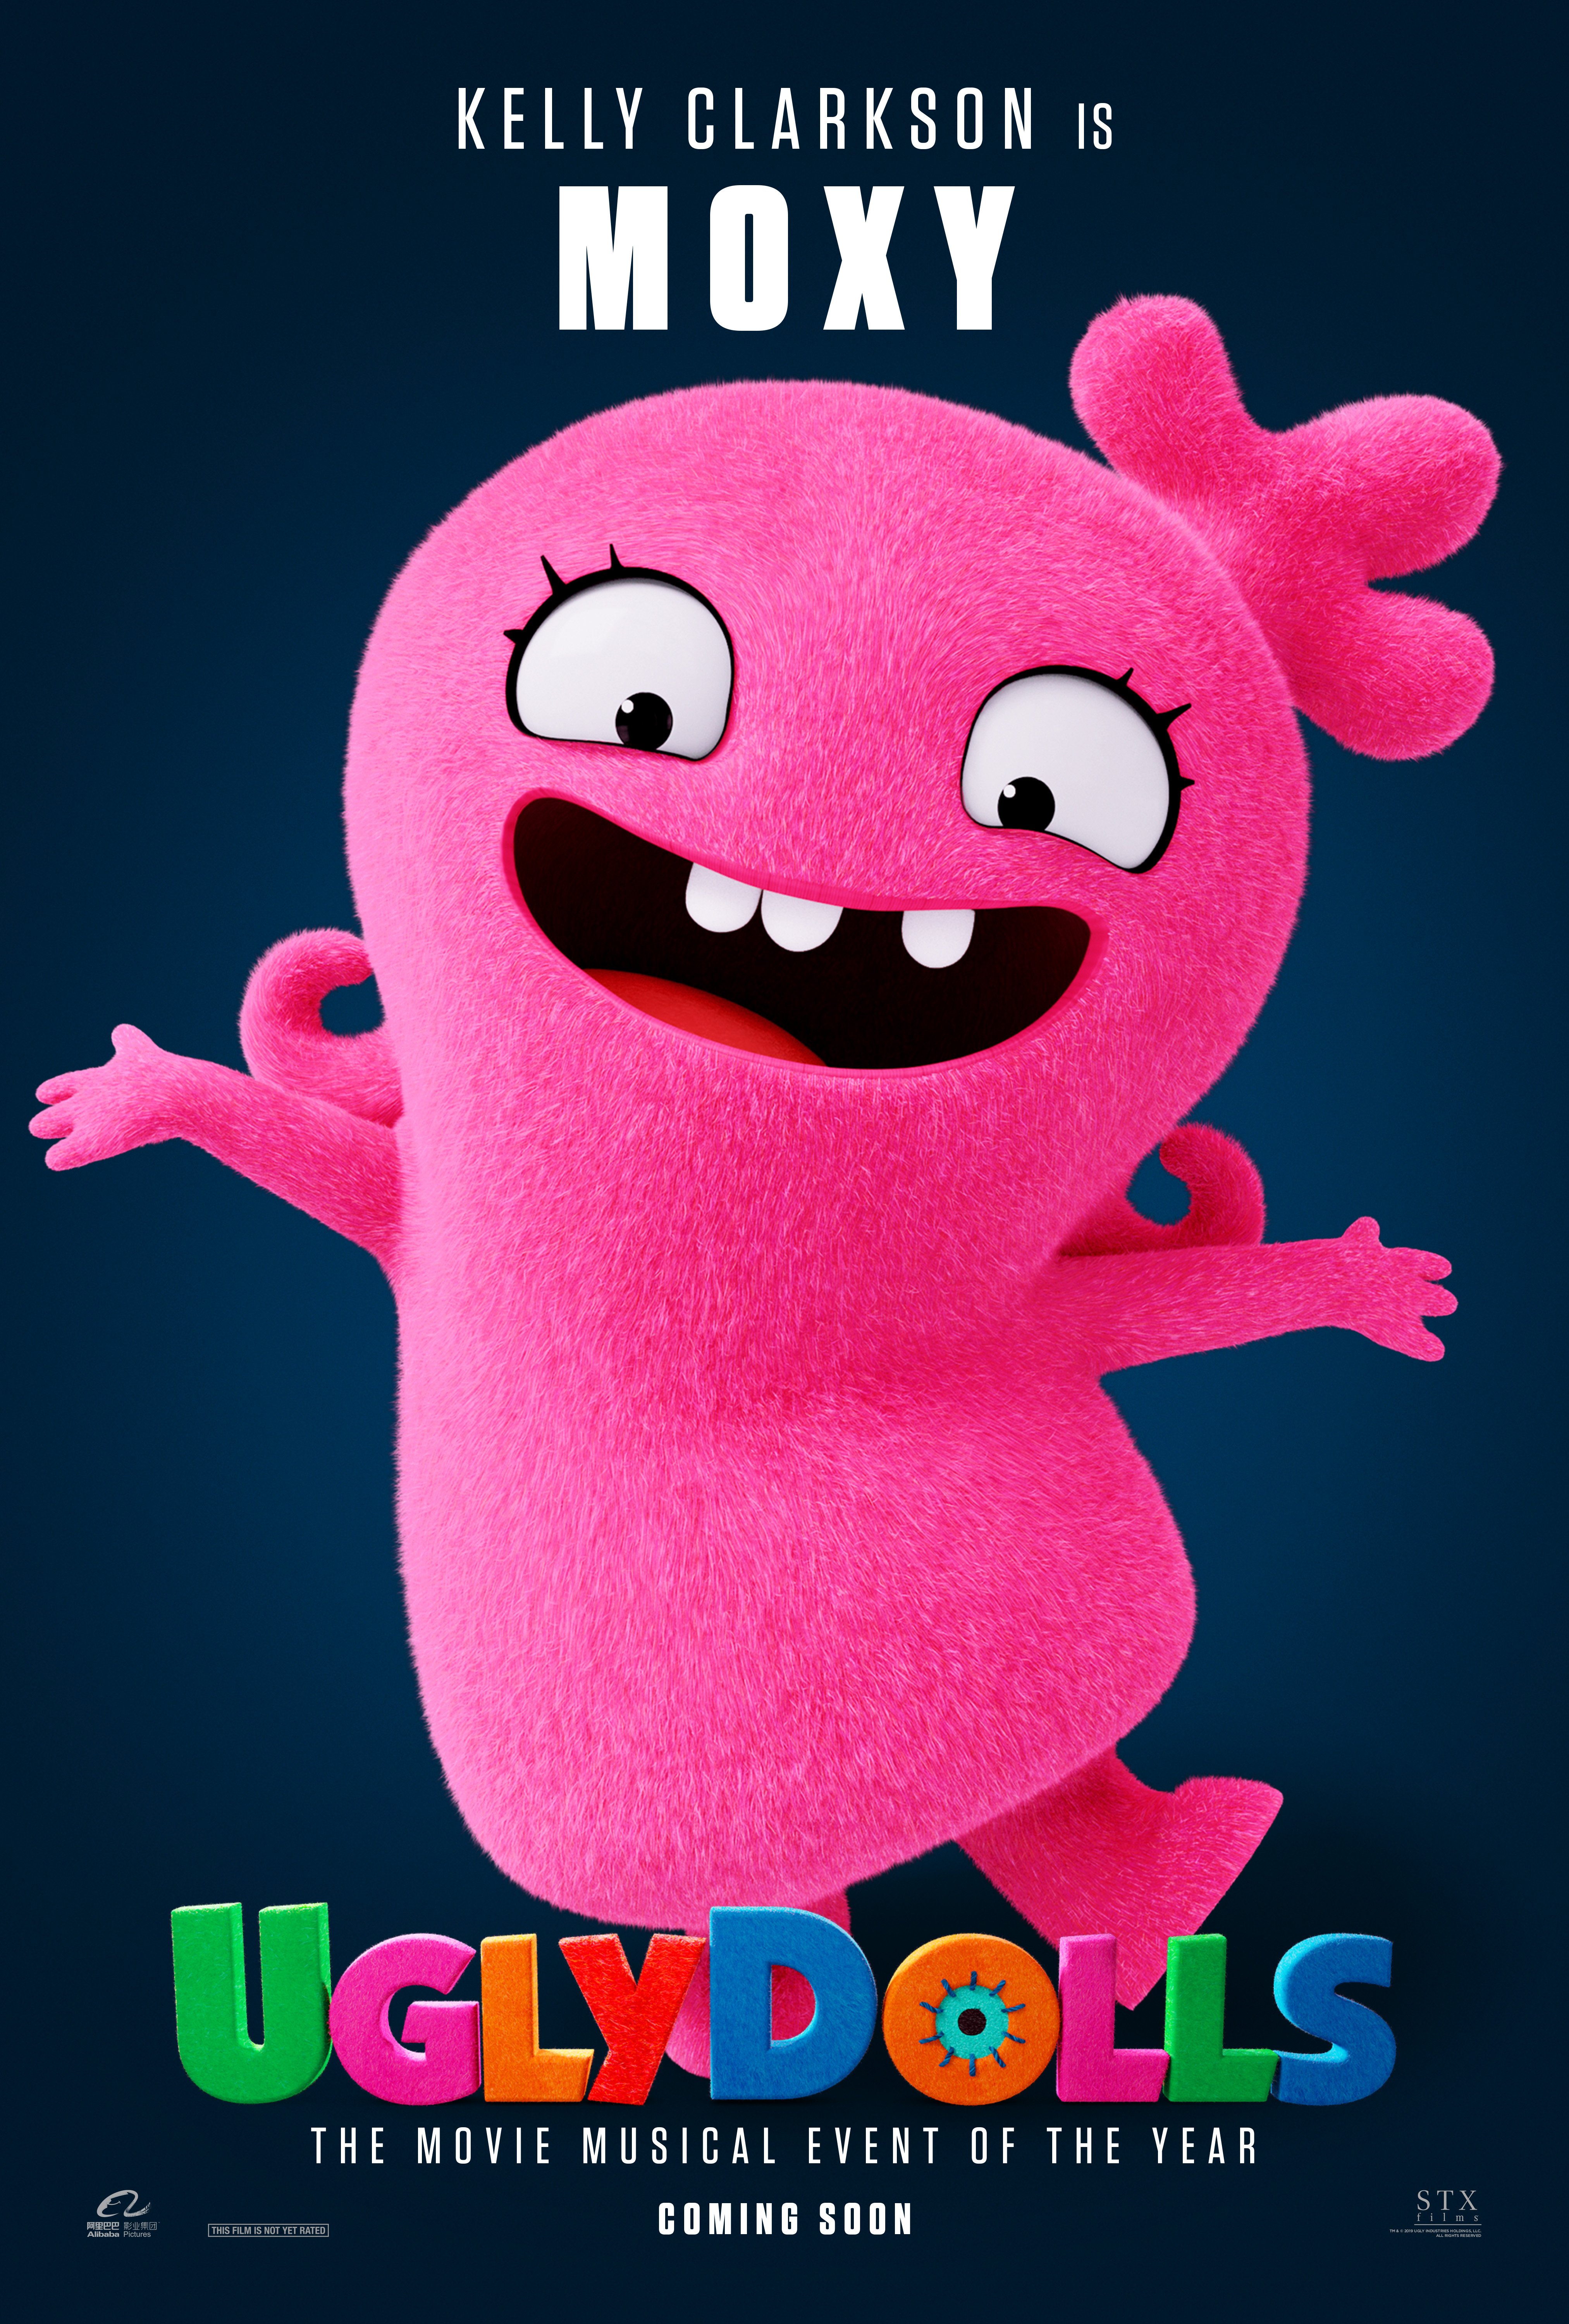 My Imperfections And How It Relates To The Film, UglyDolls